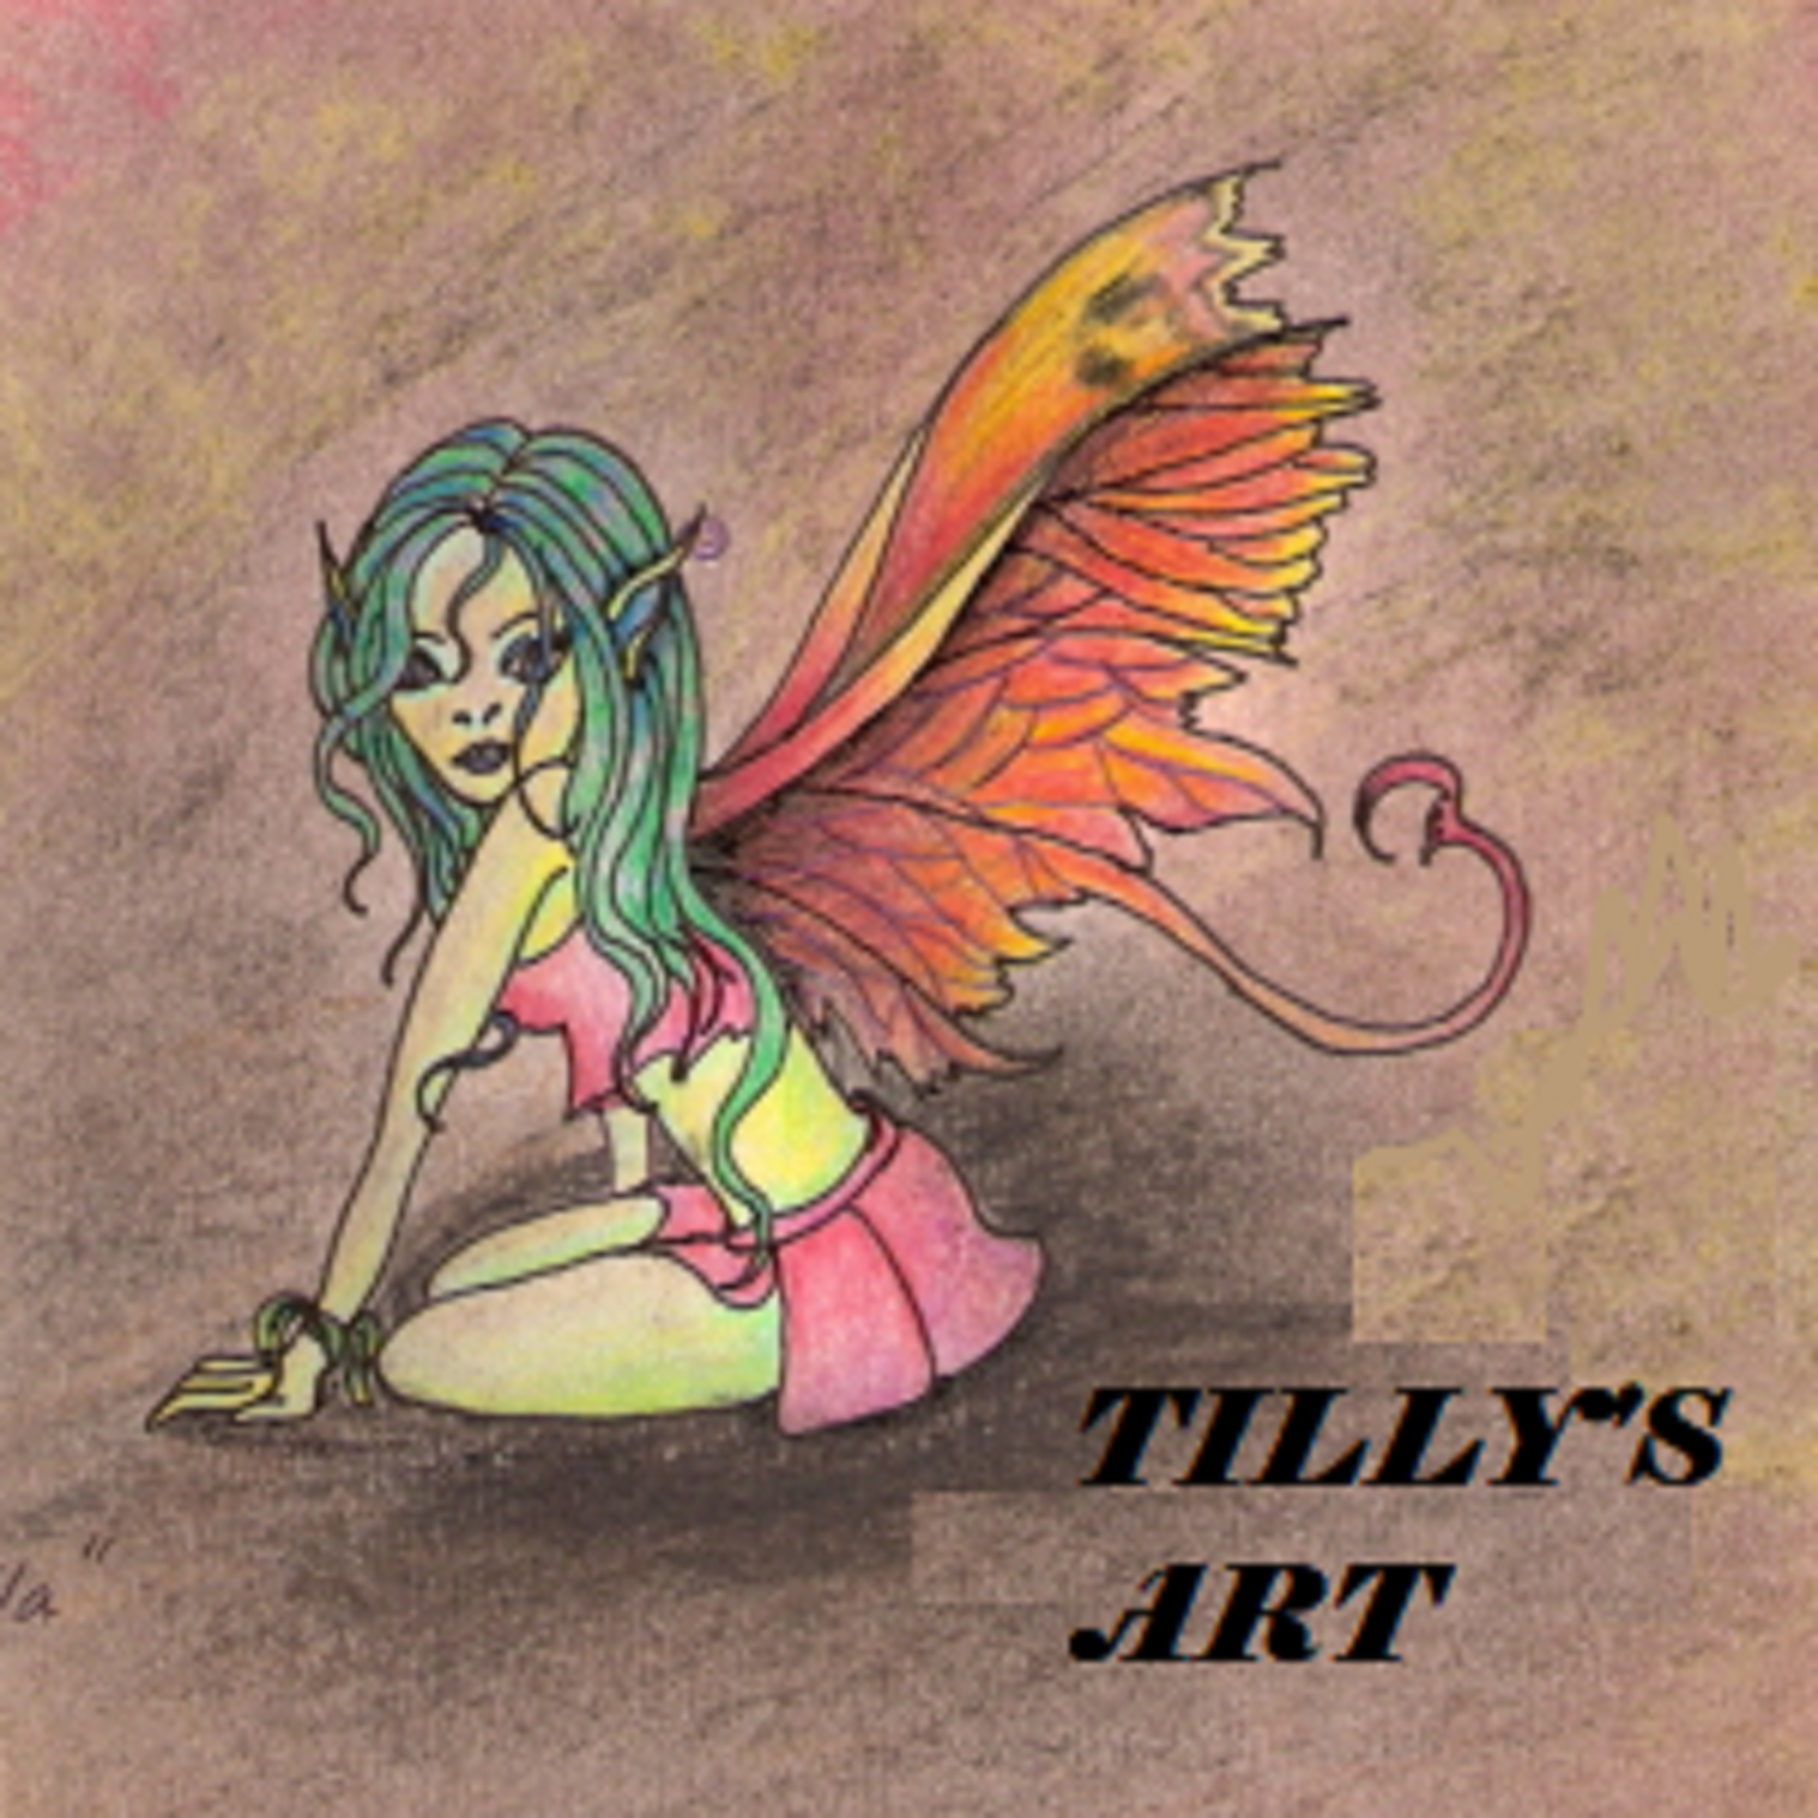 greeting cards by Tilly's Art